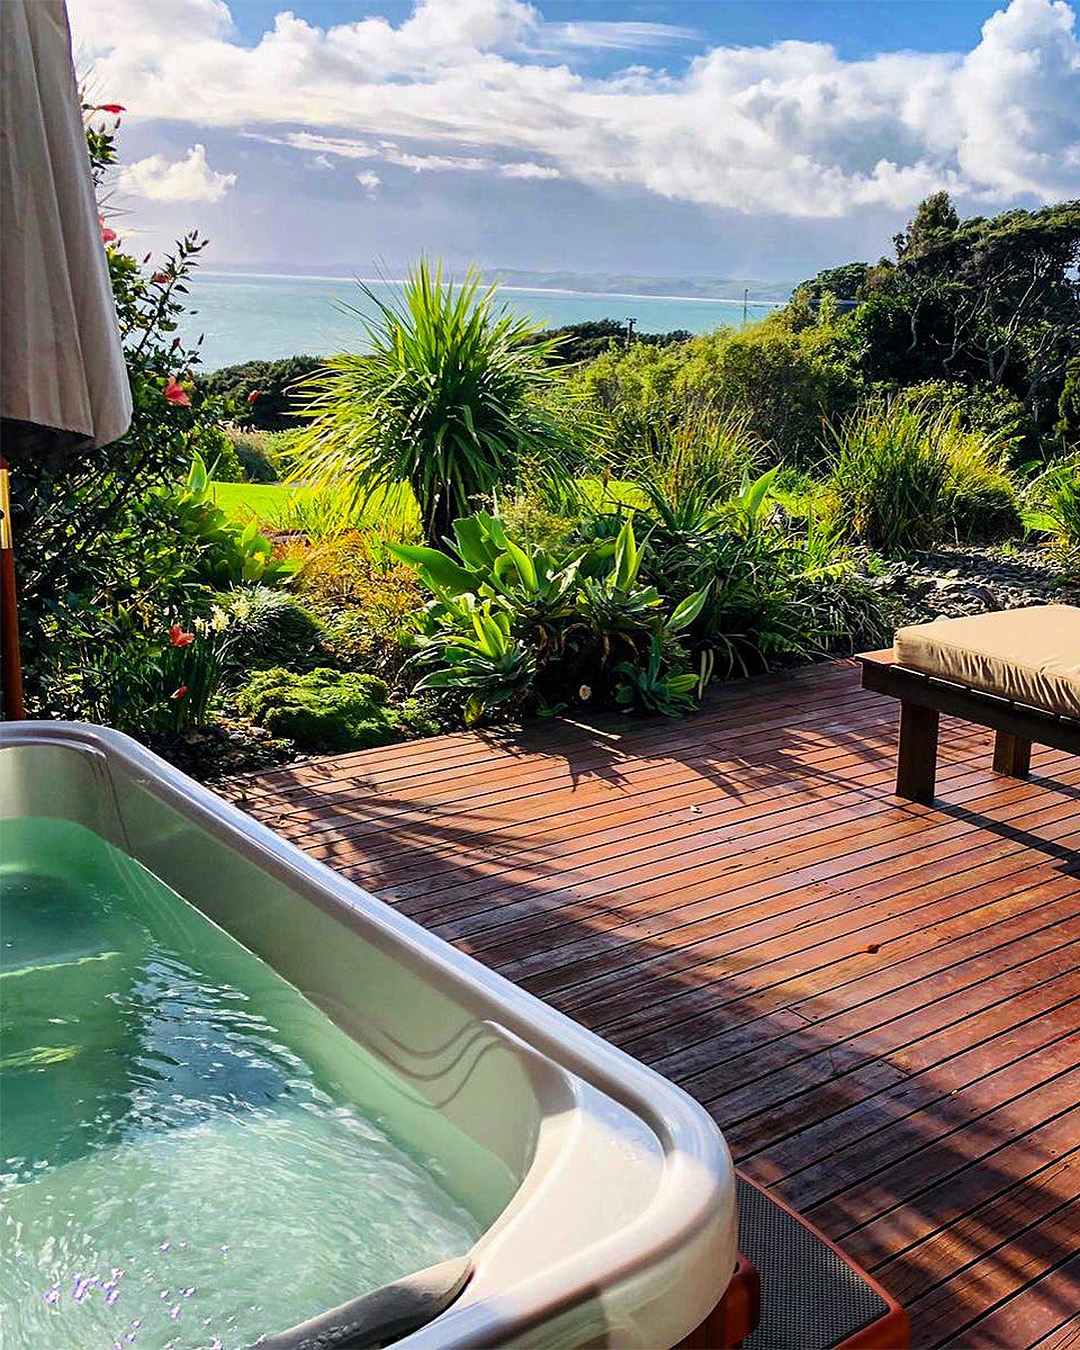 An outdoor hot tub looks out onto a lovely view.